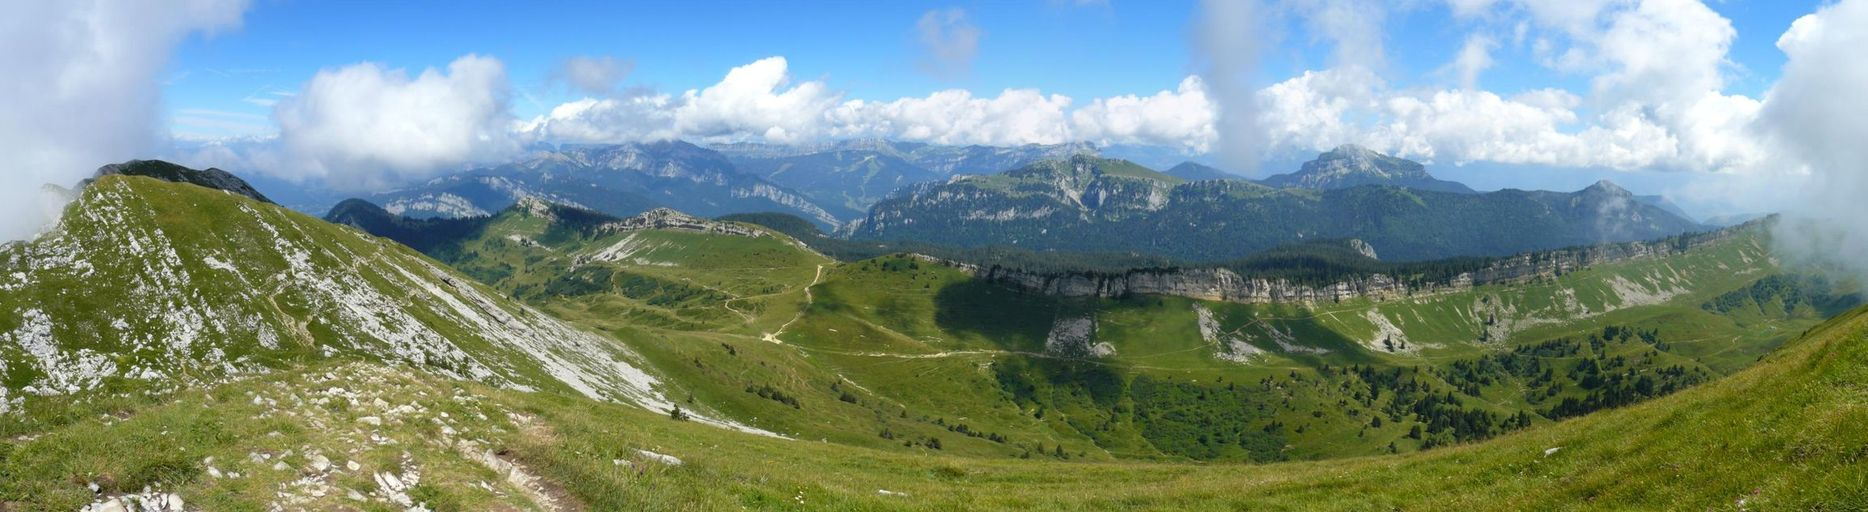 http://montagne.a.vaches.free.fr/Rando/Chartreuse/Sure/p131-139.jpg